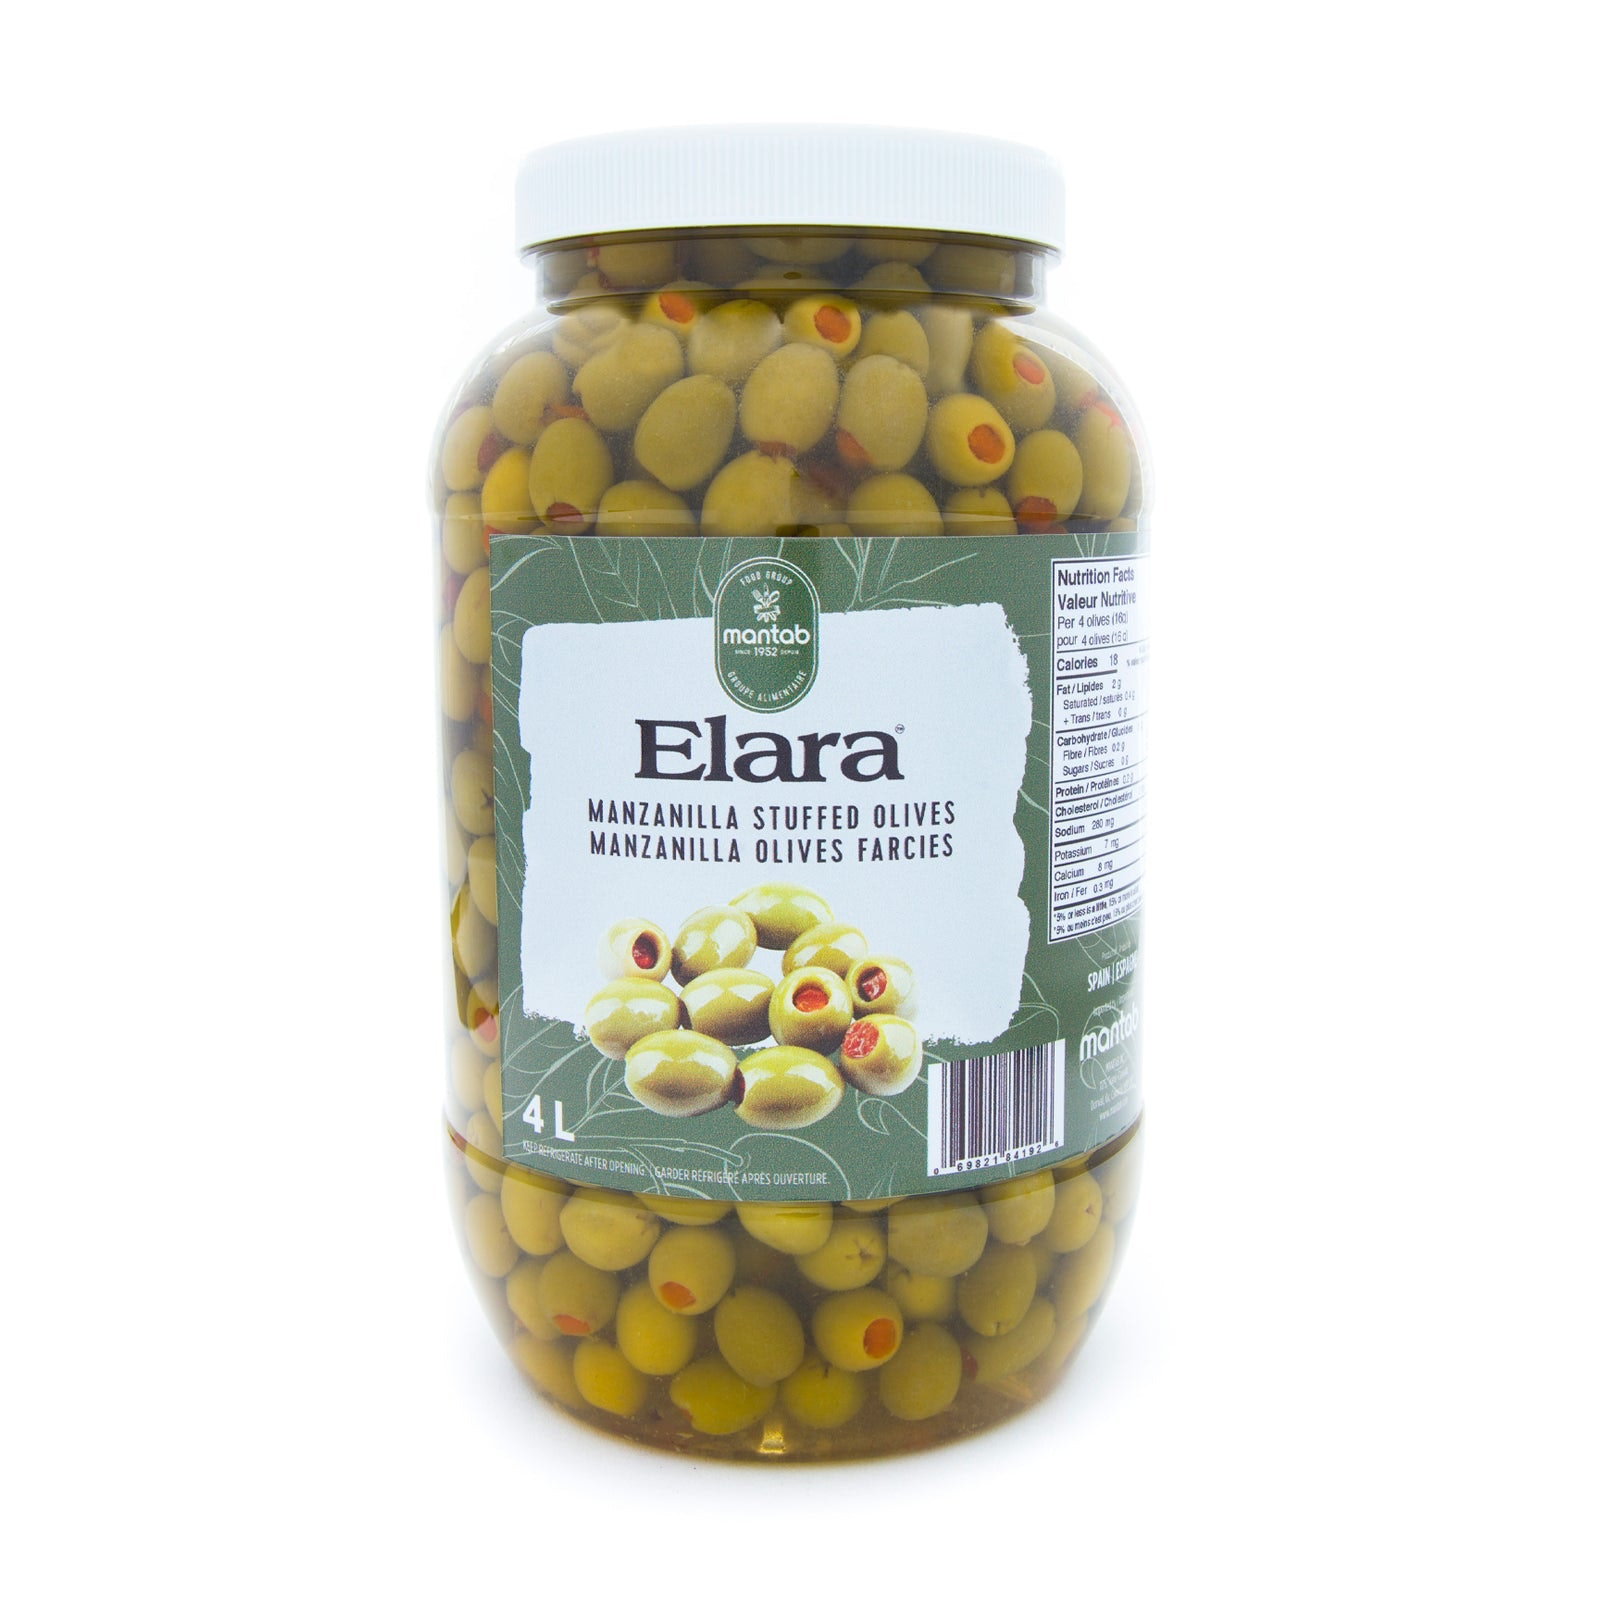 Elara Manzanilla Stuffed Olives